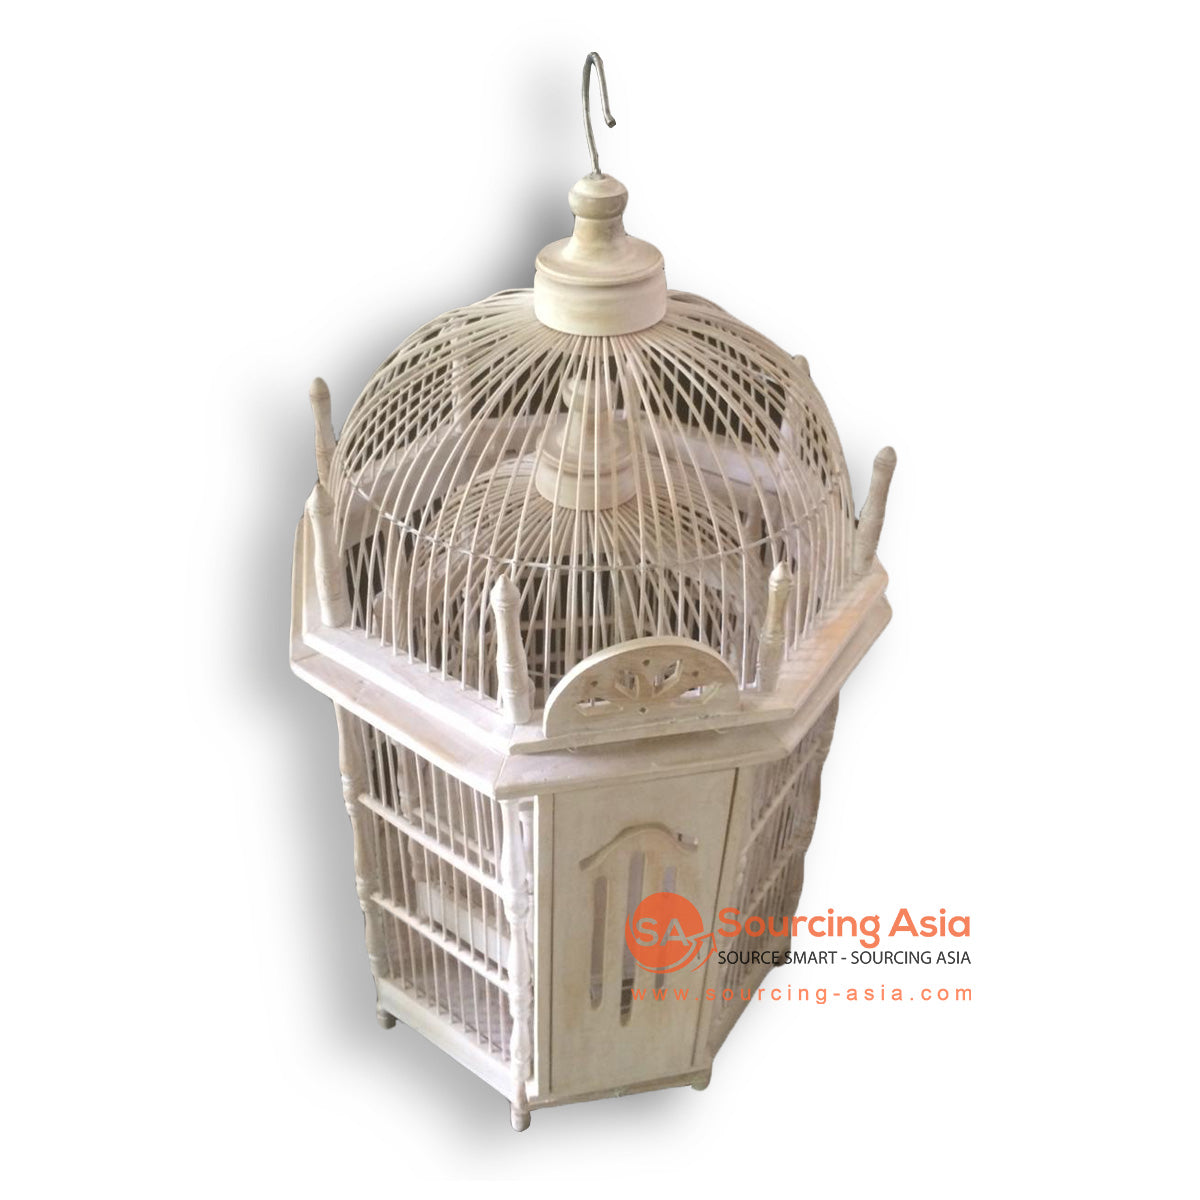 SM052-1 SET OF 2 BIRD CAGES